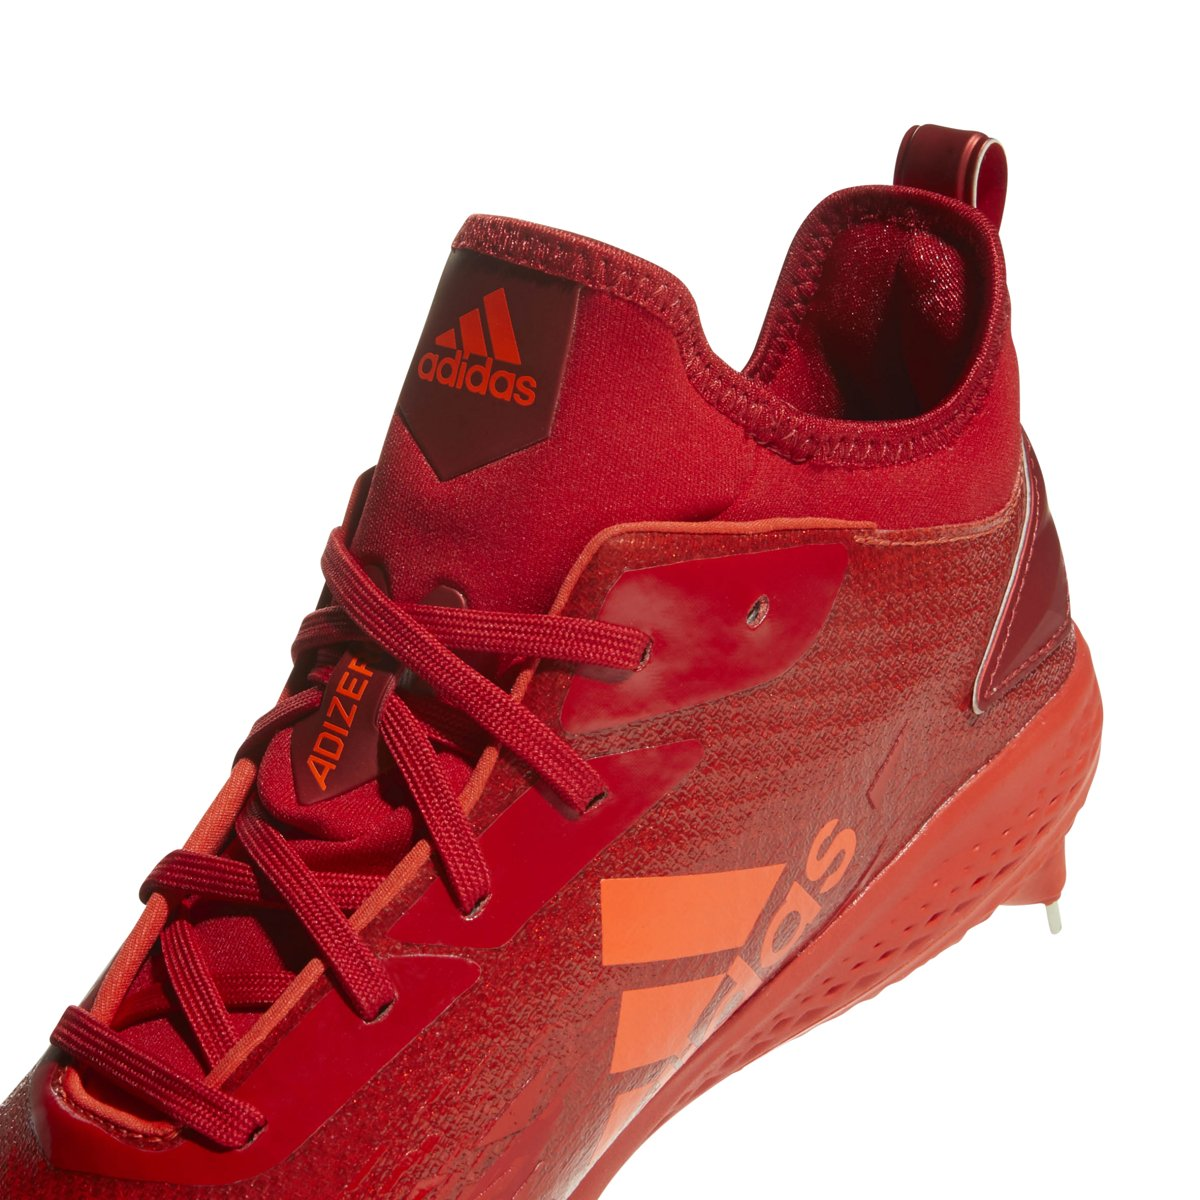 adidas Adizero Afterburner V Dipped Cleat - Men's Baseball 8.5 Hi Res Red/Scarlet/Solar Red by adidas (Image #4)